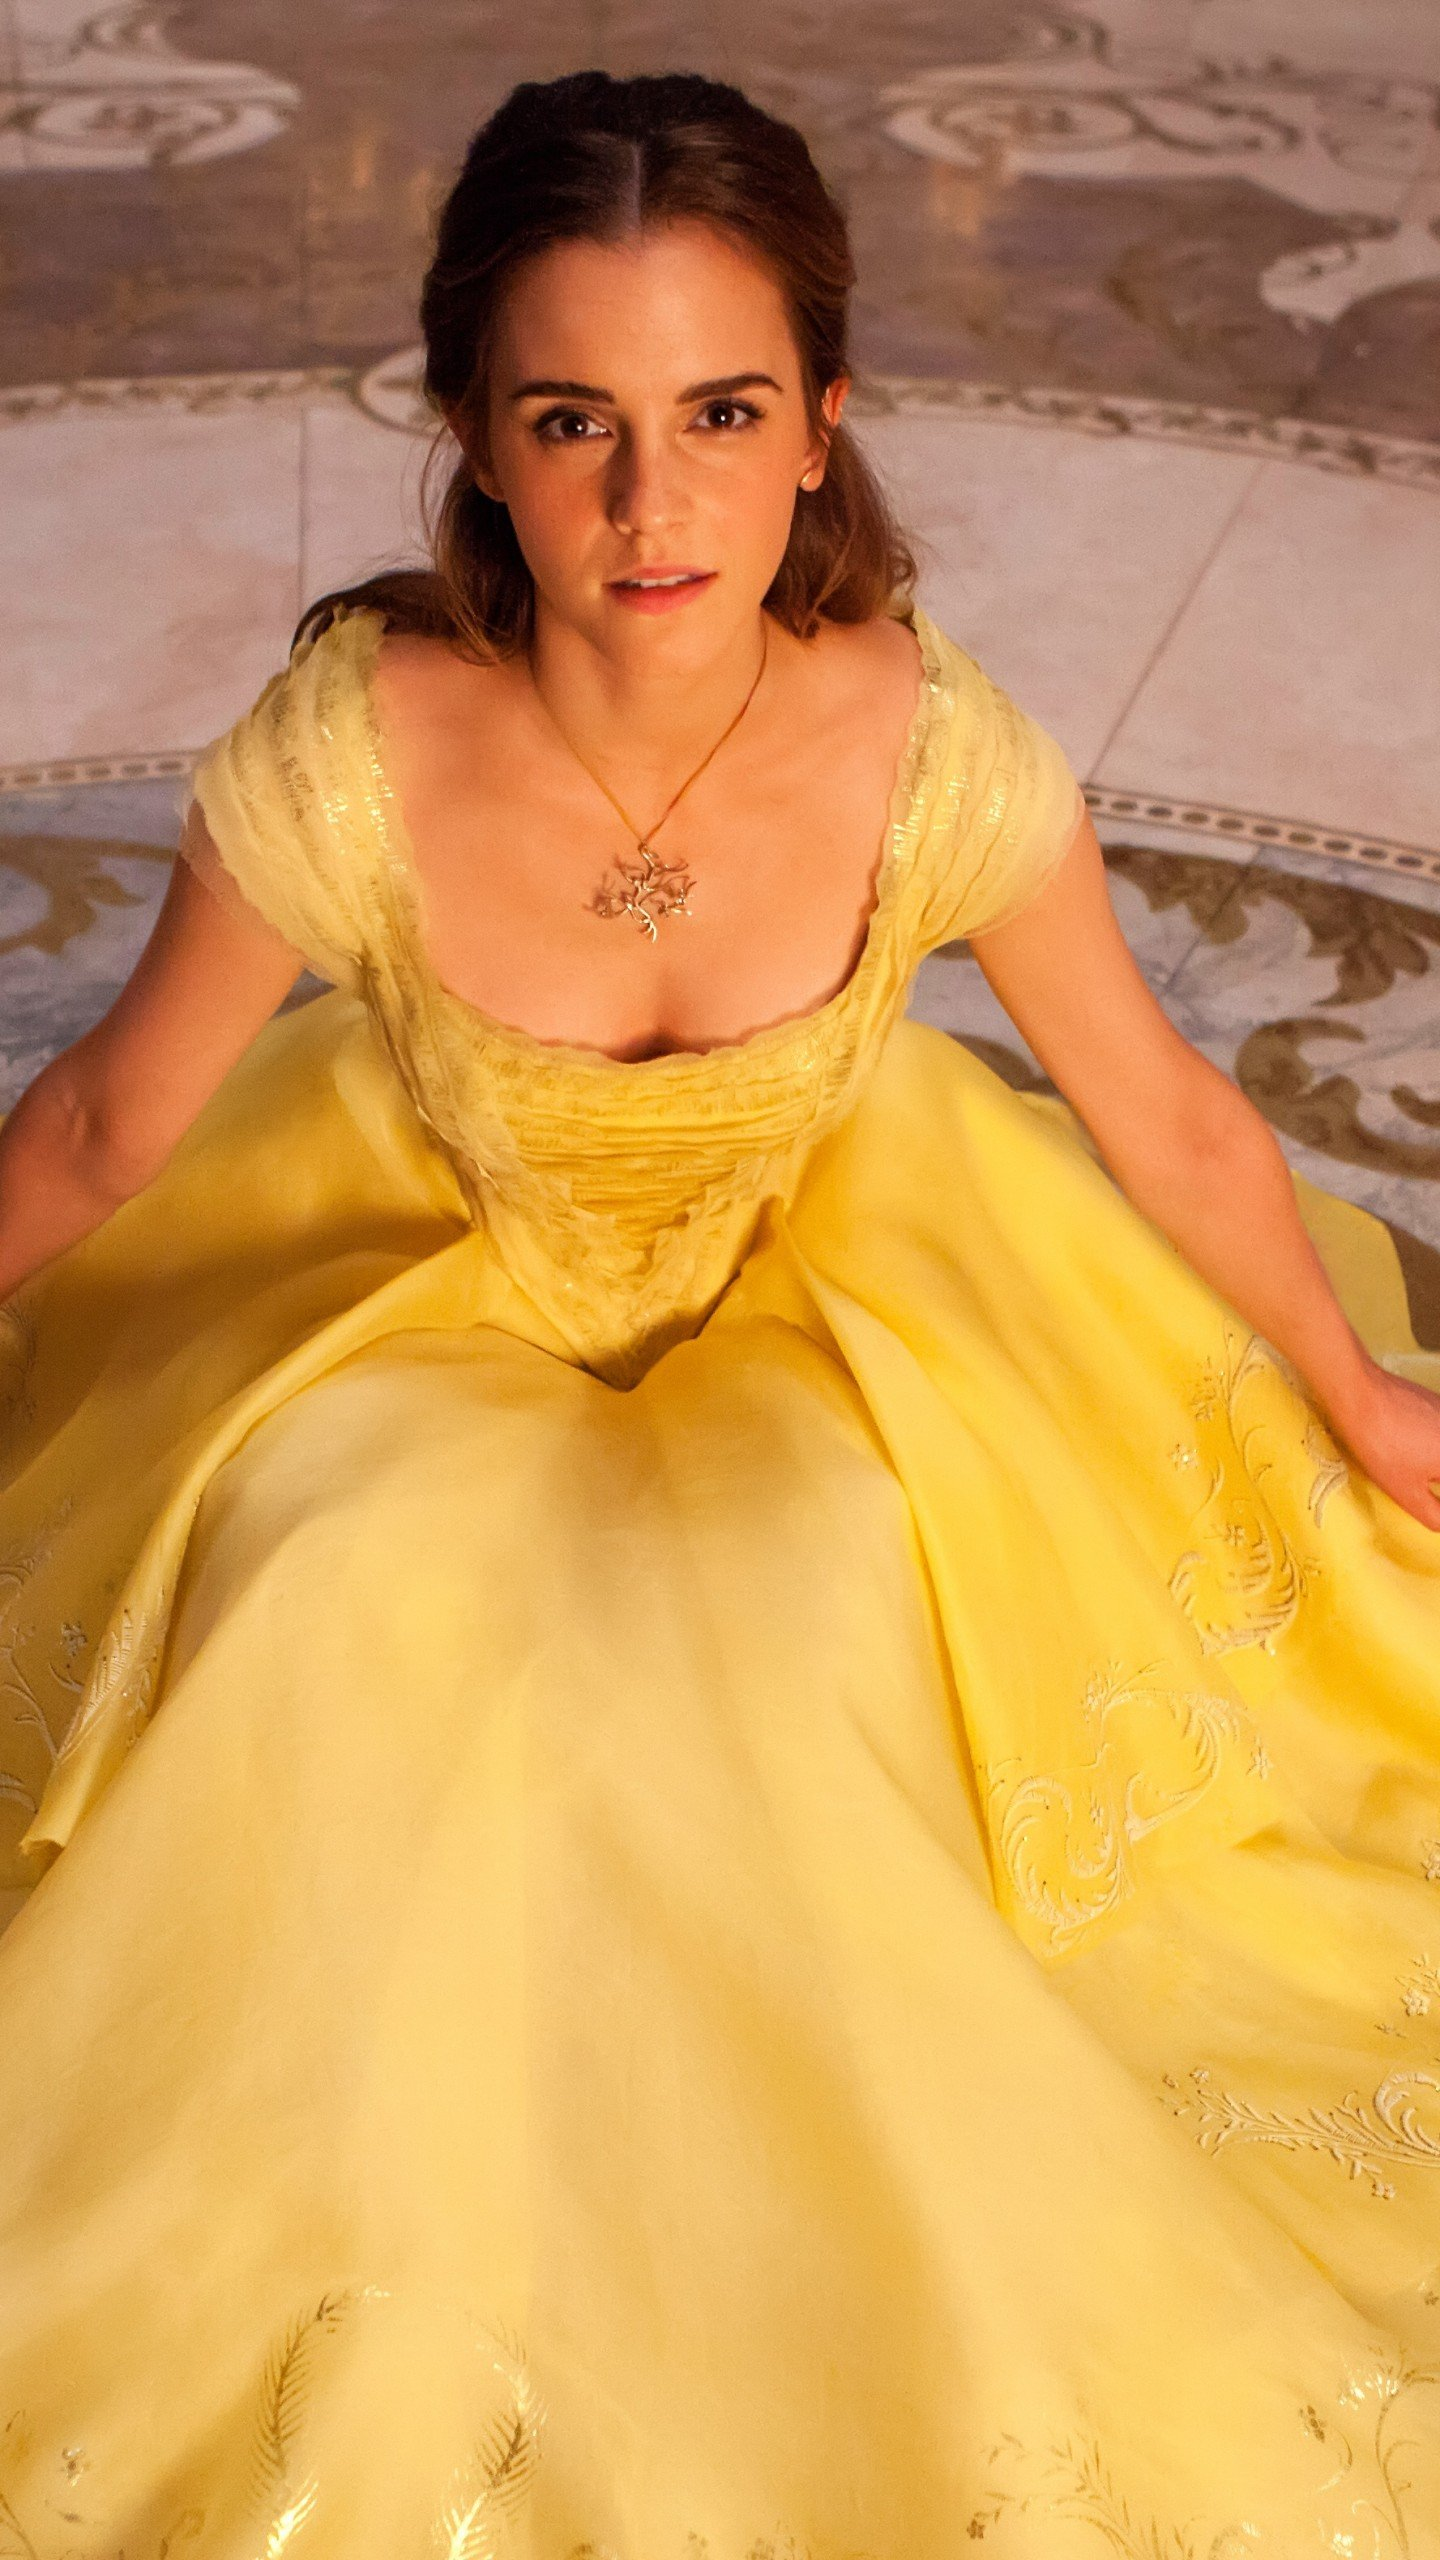 Emma Watson Belle Wallpaper HD